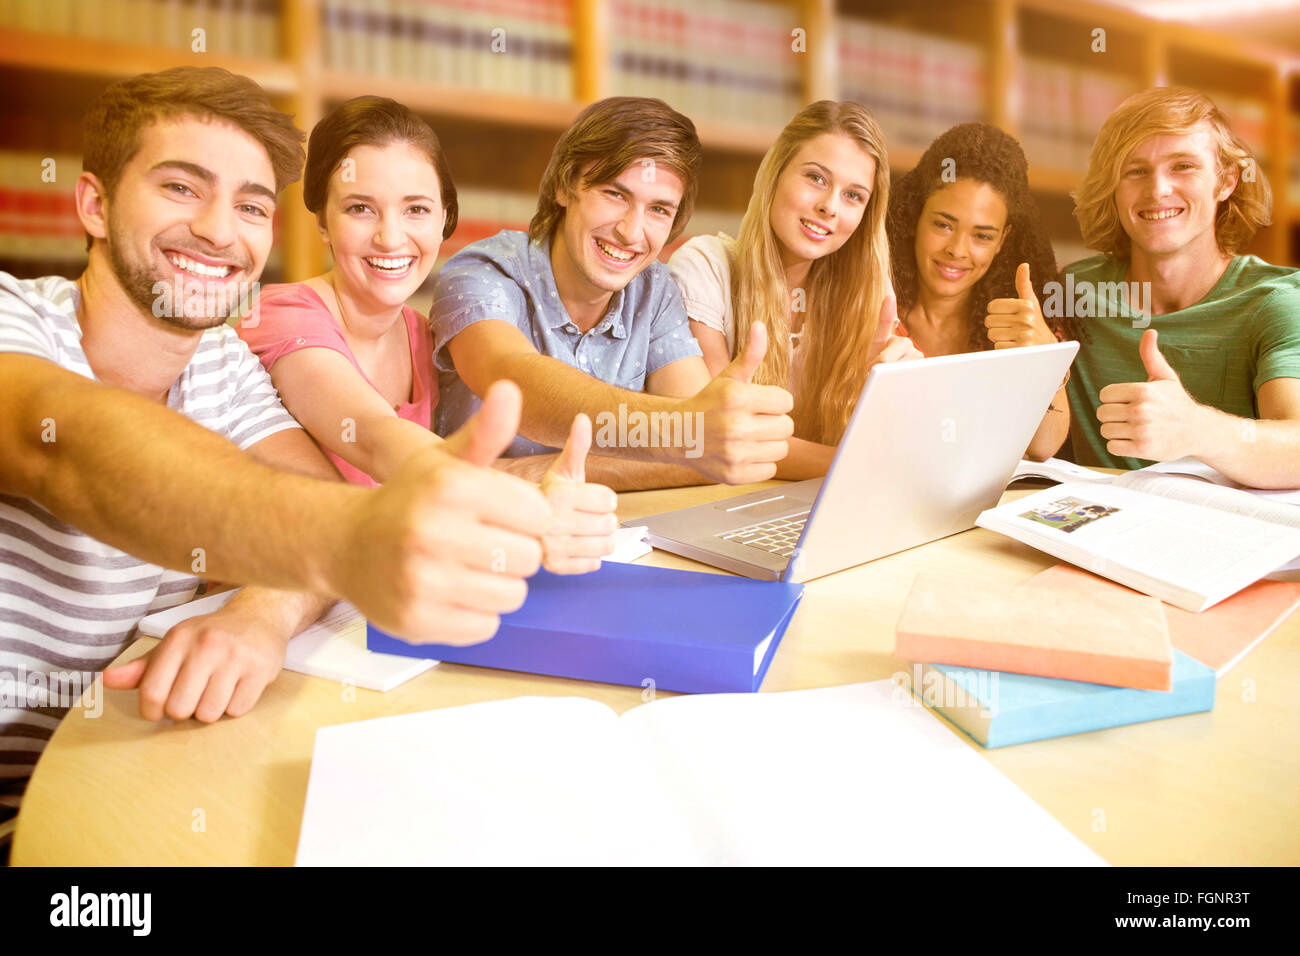 Composite image of college students gesturing thumbs up in library - Stock Image